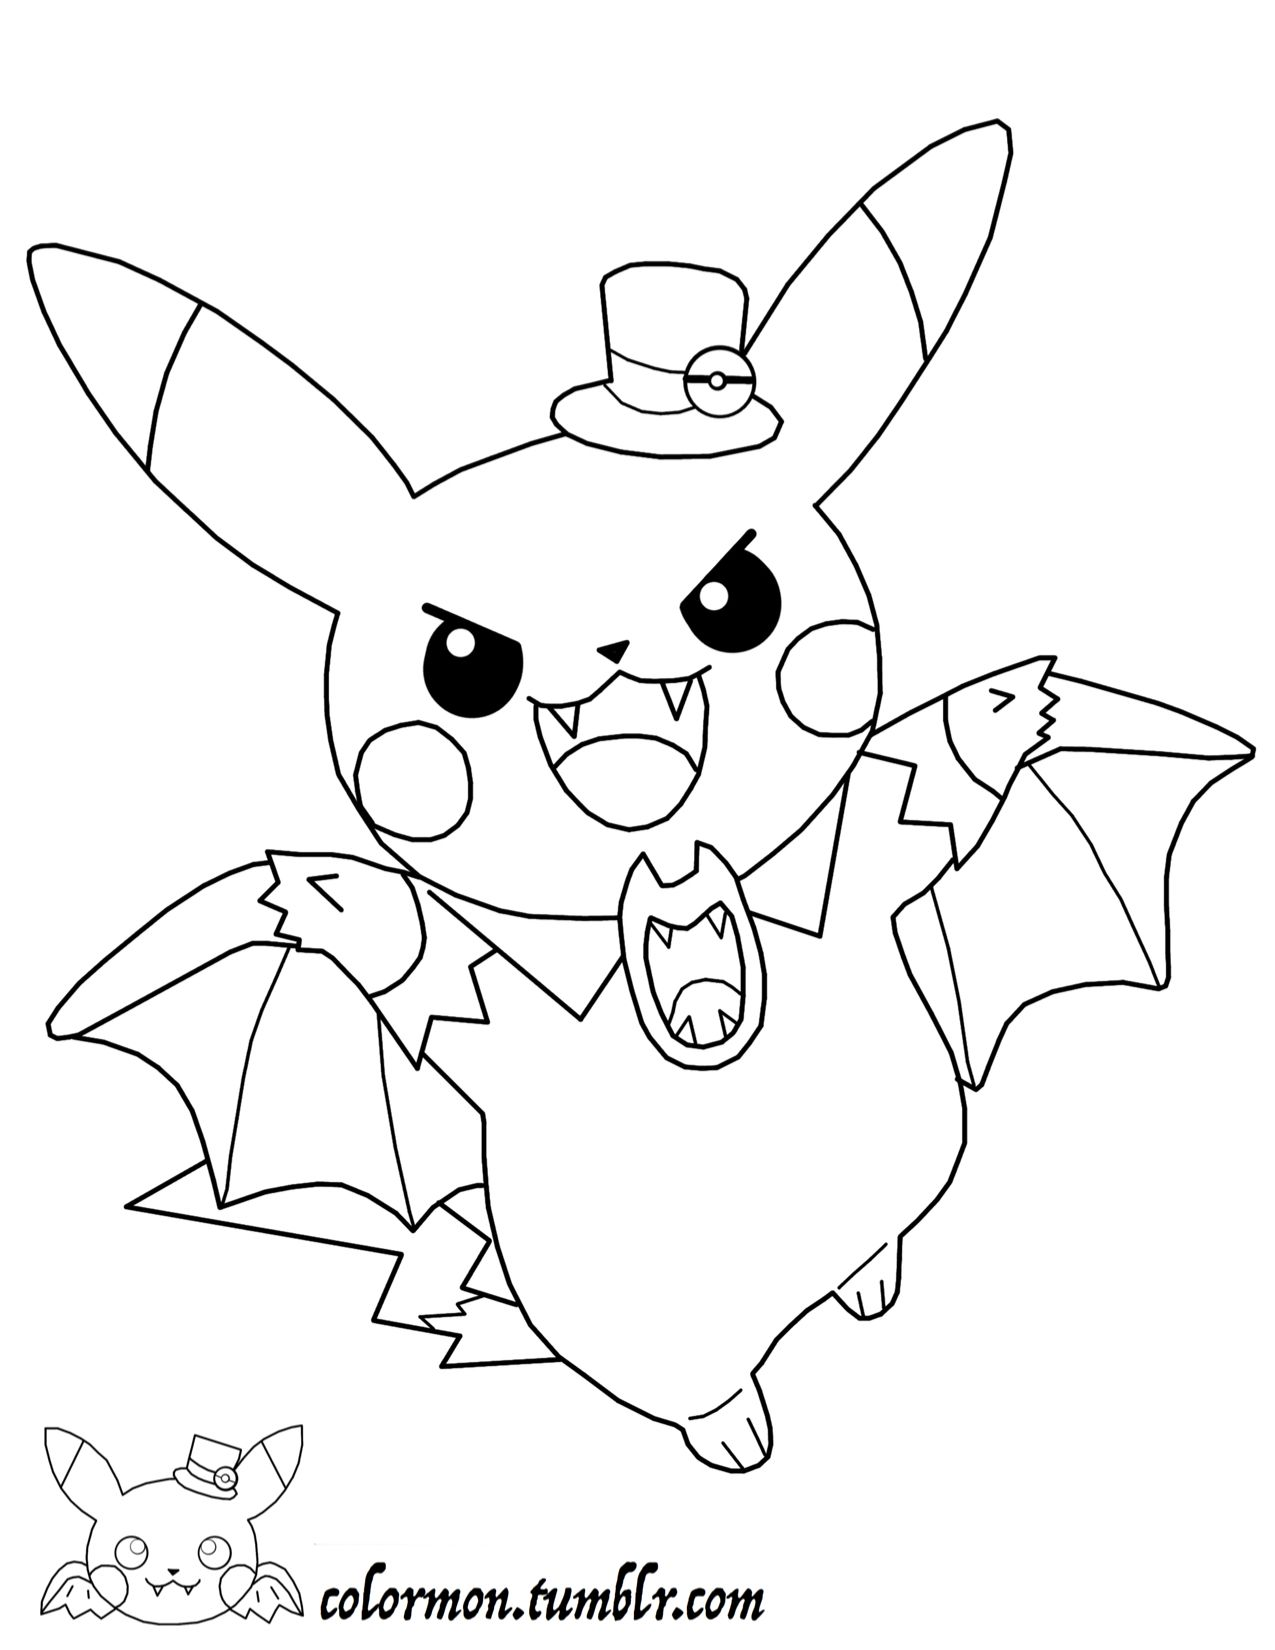 zombie pokemon coloring pages shiba inu coloring pages at getcoloringscom free coloring pokemon zombie pages